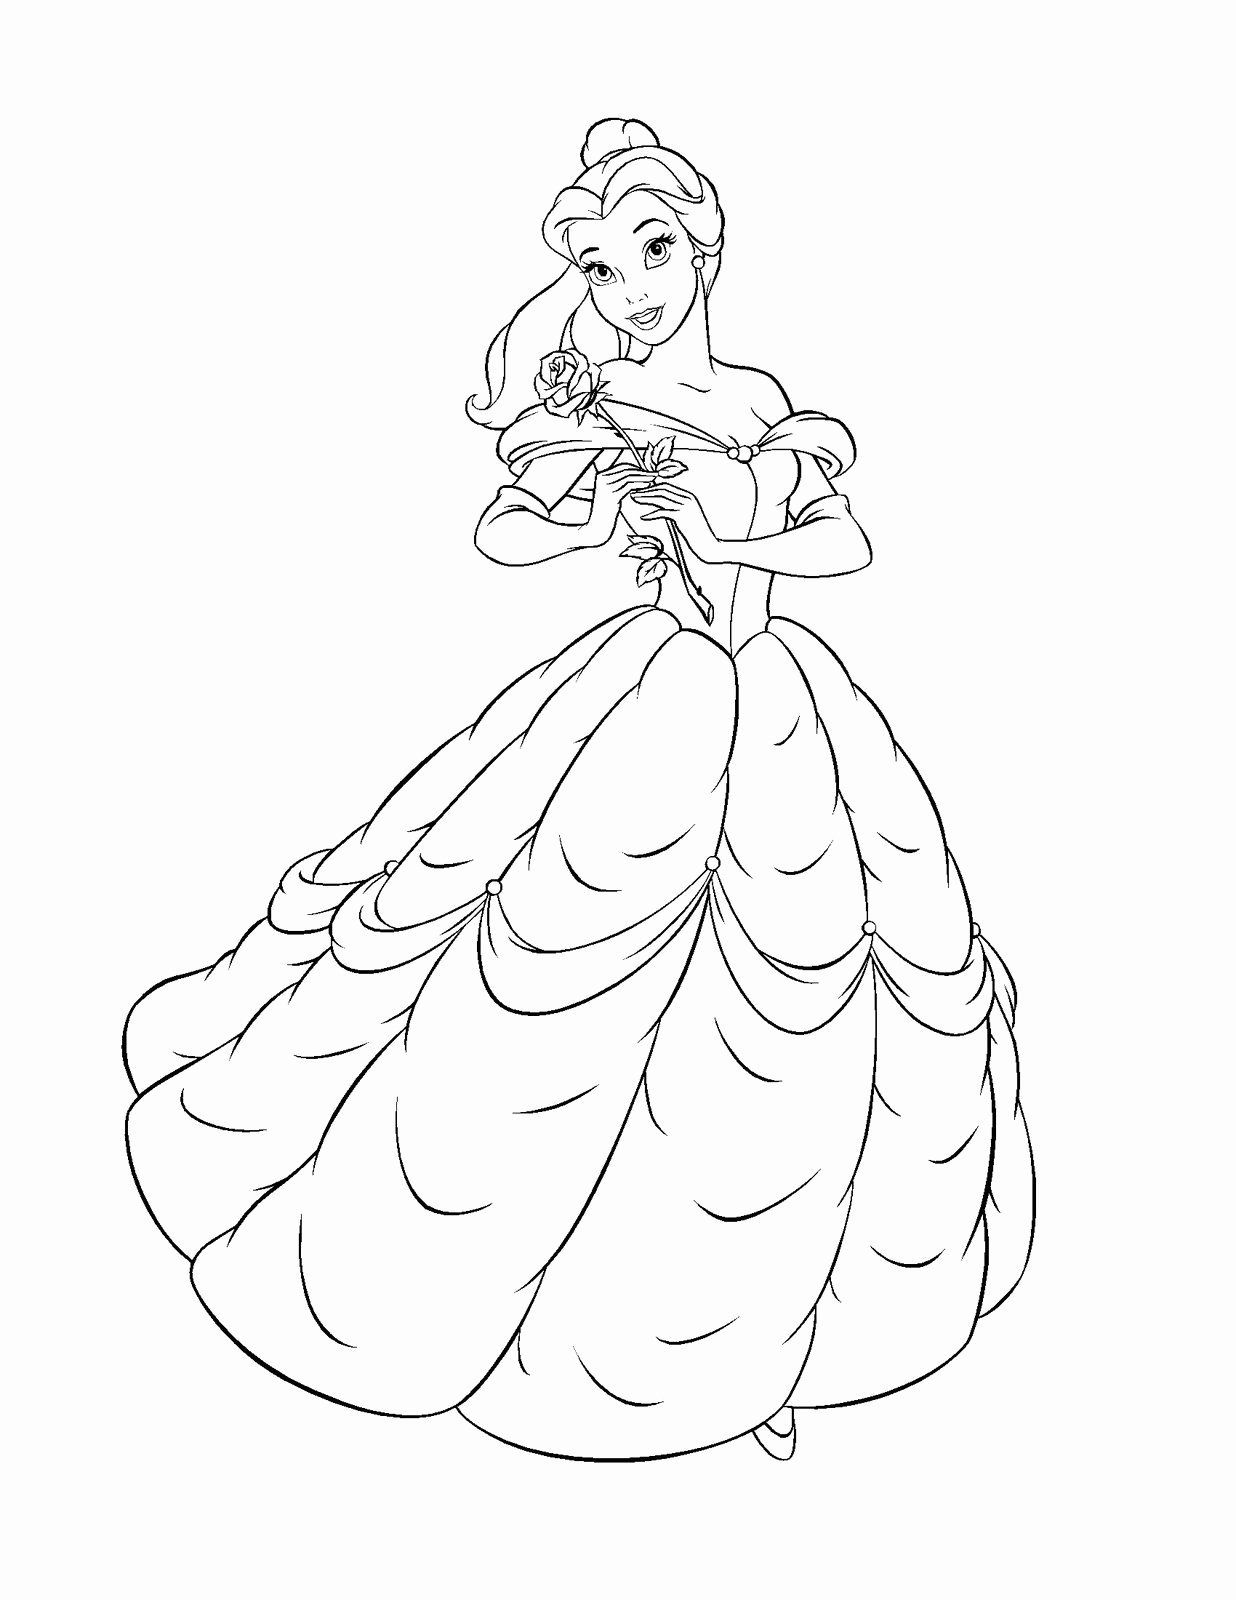 Disney Belle Coloring Pages Lovely Free Printable Belle Coloring Pages For Kids In 2020 Belle Coloring Pages Disney Princess Coloring Pages Disney Princess Colors